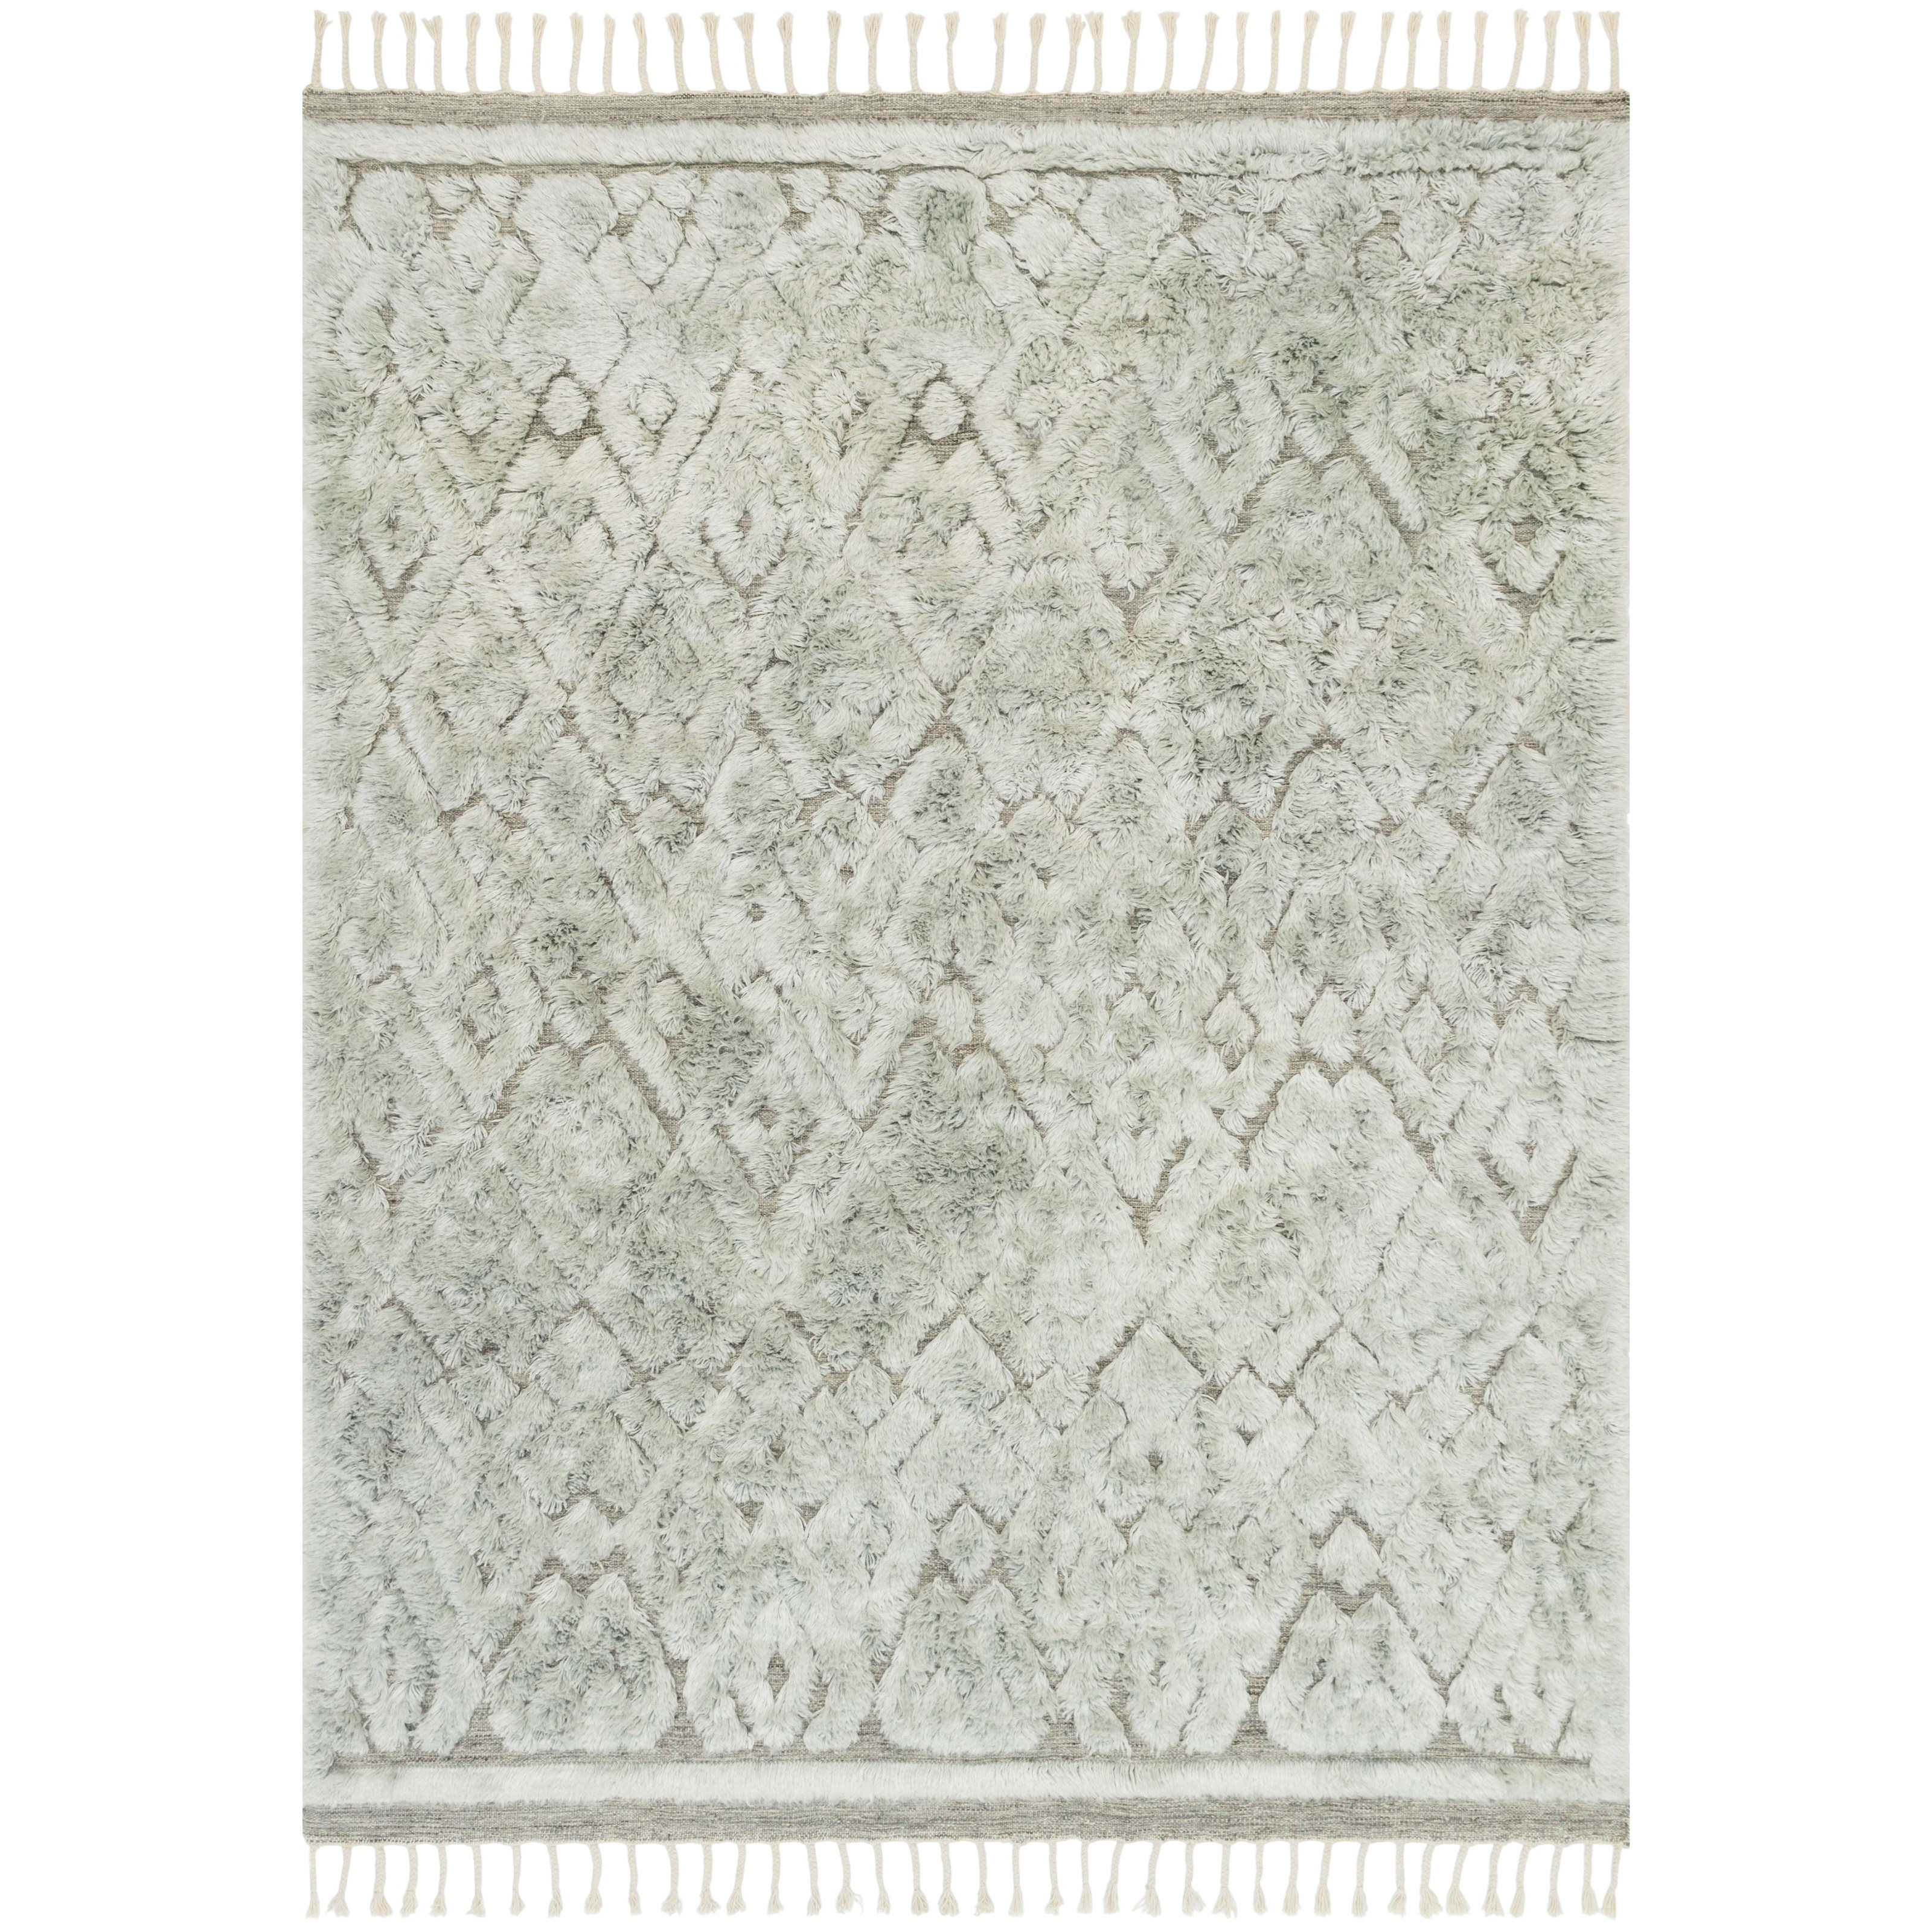 """Hygge 4'0"""" x 6'0"""" Grey / Mist Rug by Loloi Rugs at Virginia Furniture Market"""